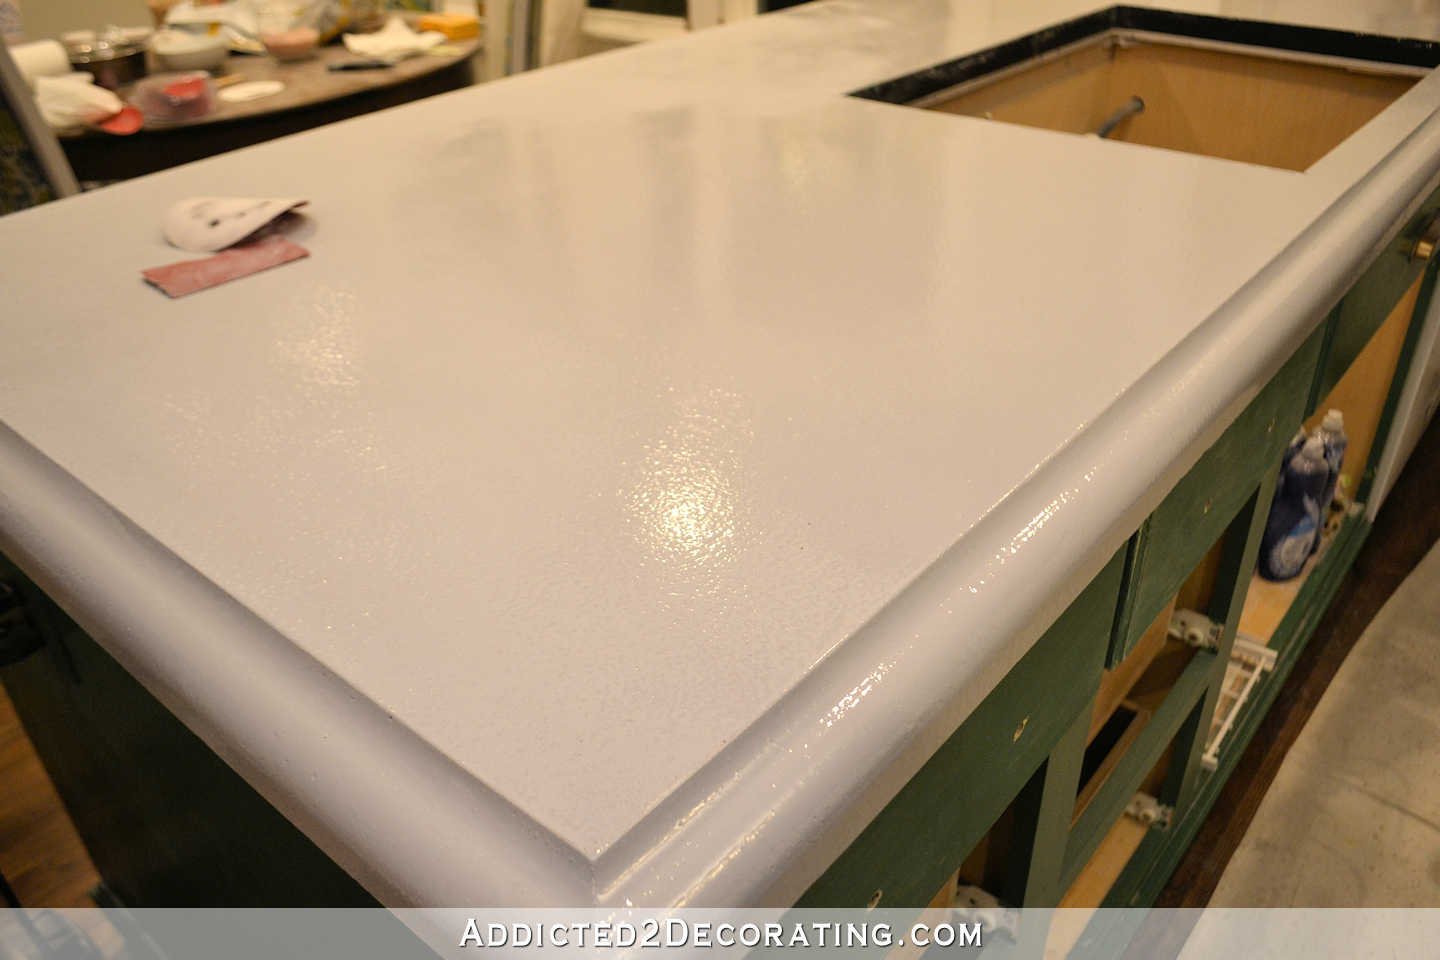 refinishing concrete countertops - 18 - concrete countertops with primer - peninsula